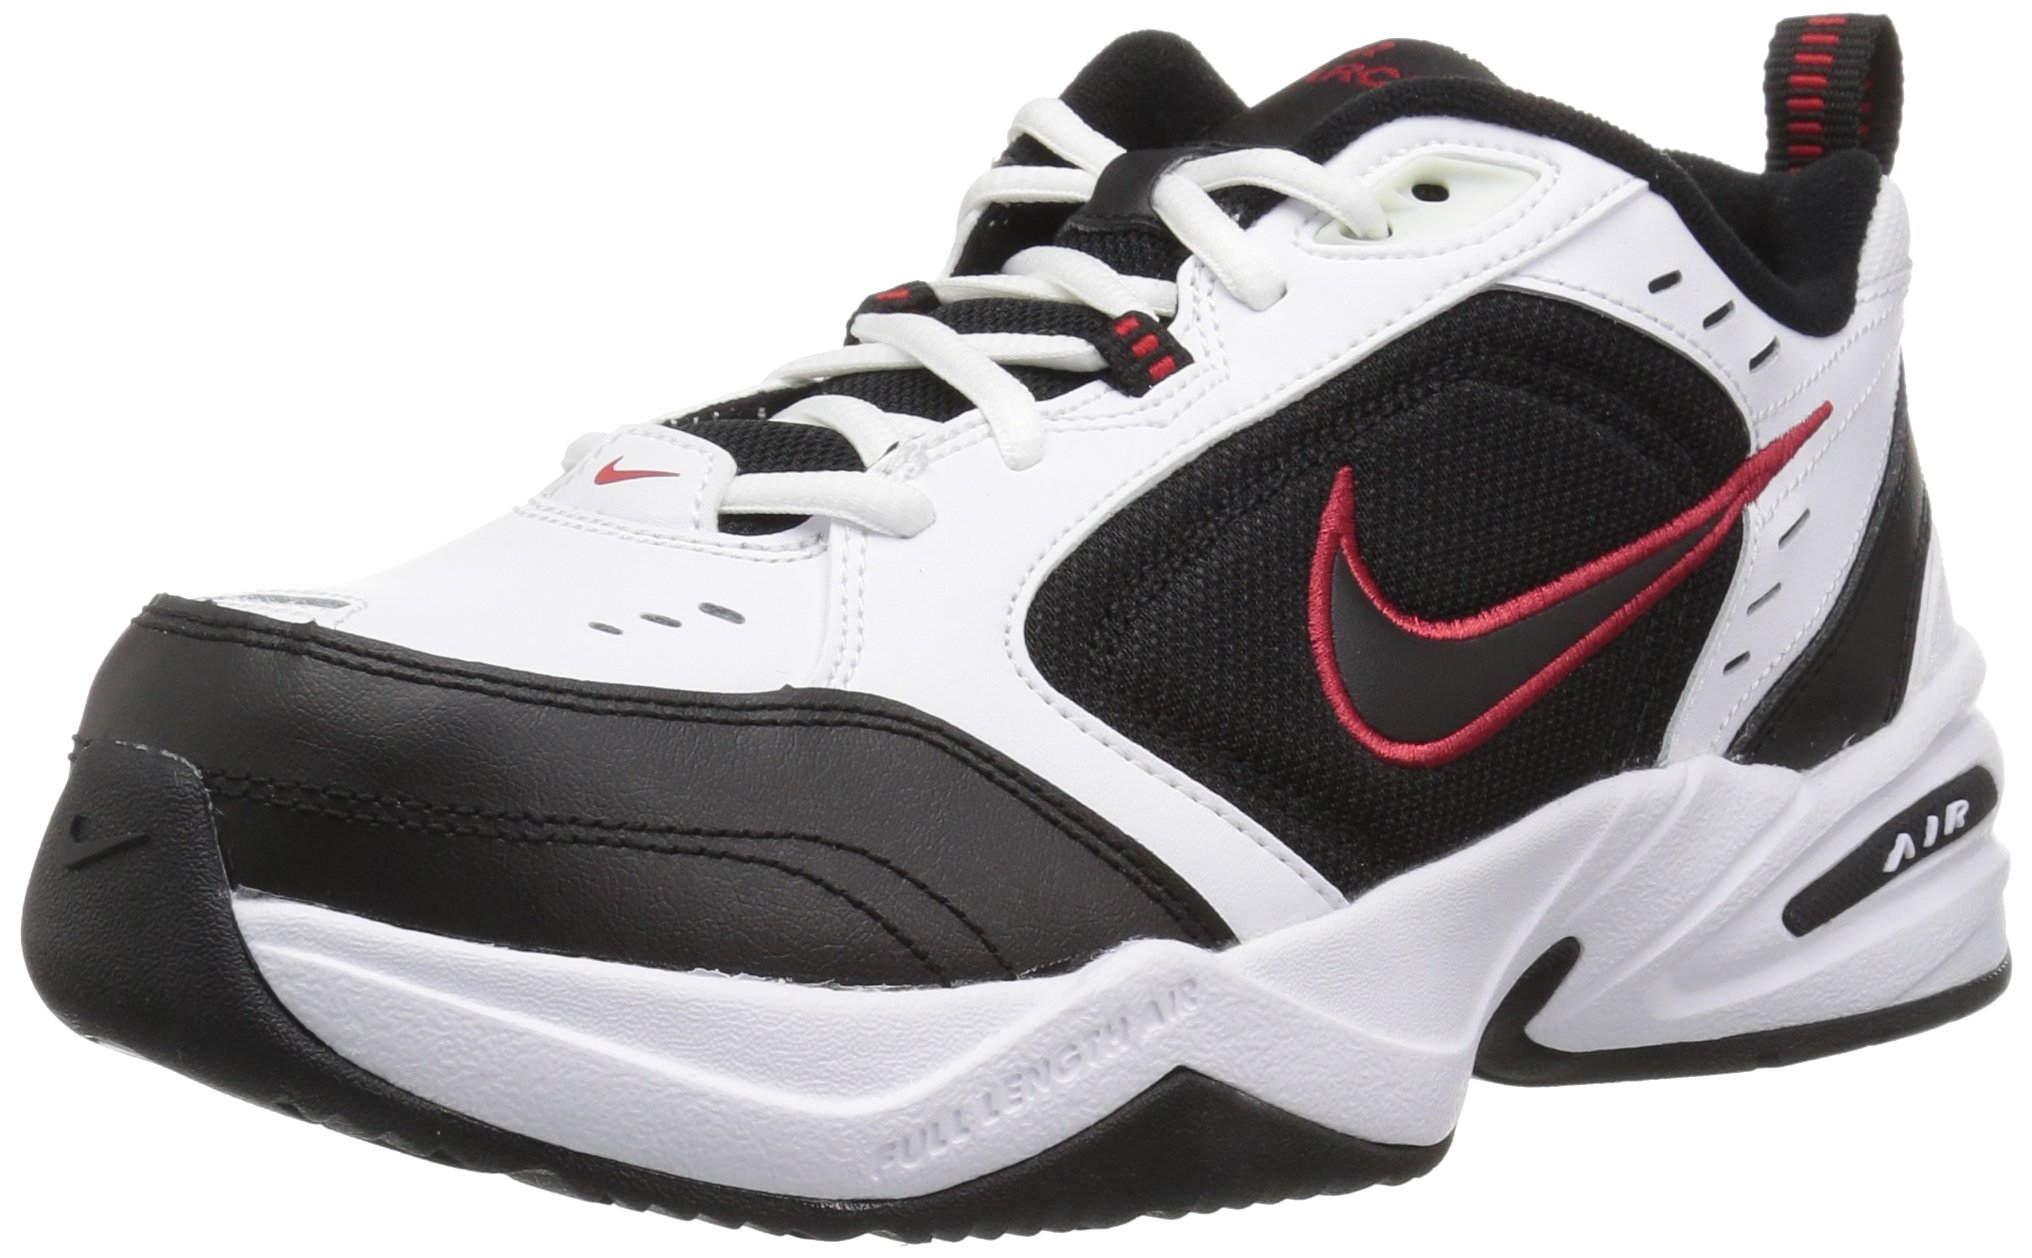 Nike Air Monarch Iv (4e) Mens 416355-101 Size 8 White/Black by Nike